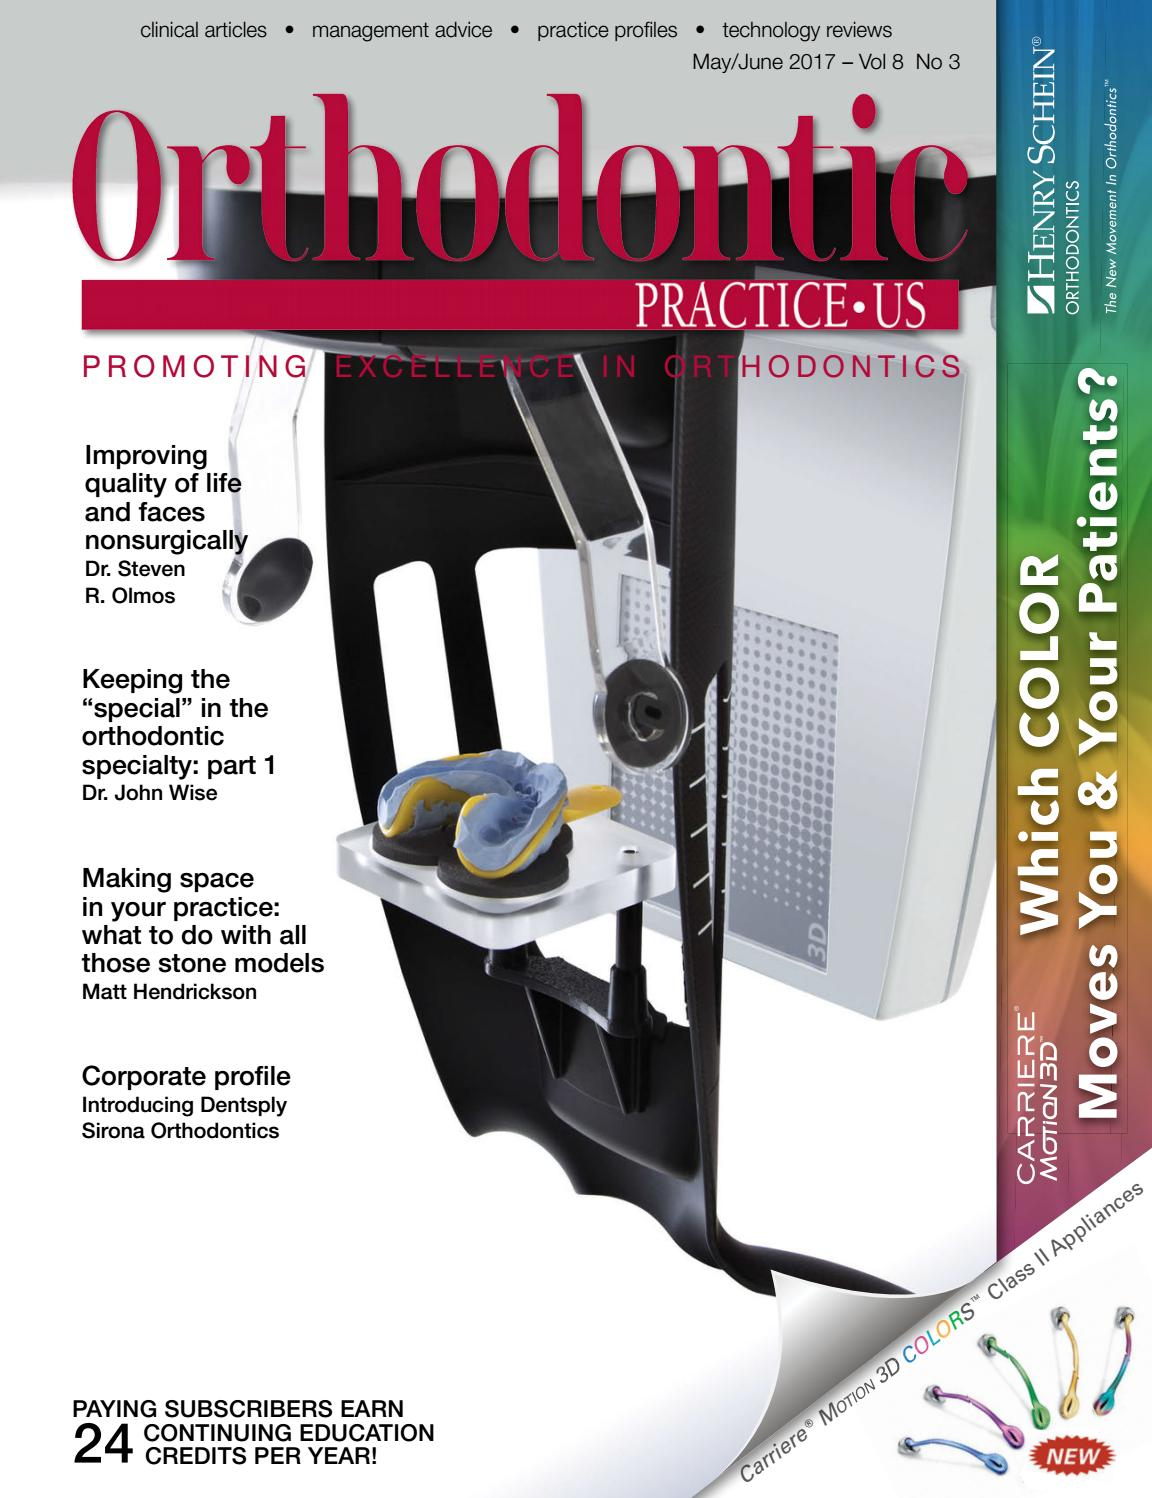 orthodontic practice us vol 8 no 3 may june 2017 by medmark, llc issuuorthodontic practice us vol 8 no 3 may june 2017